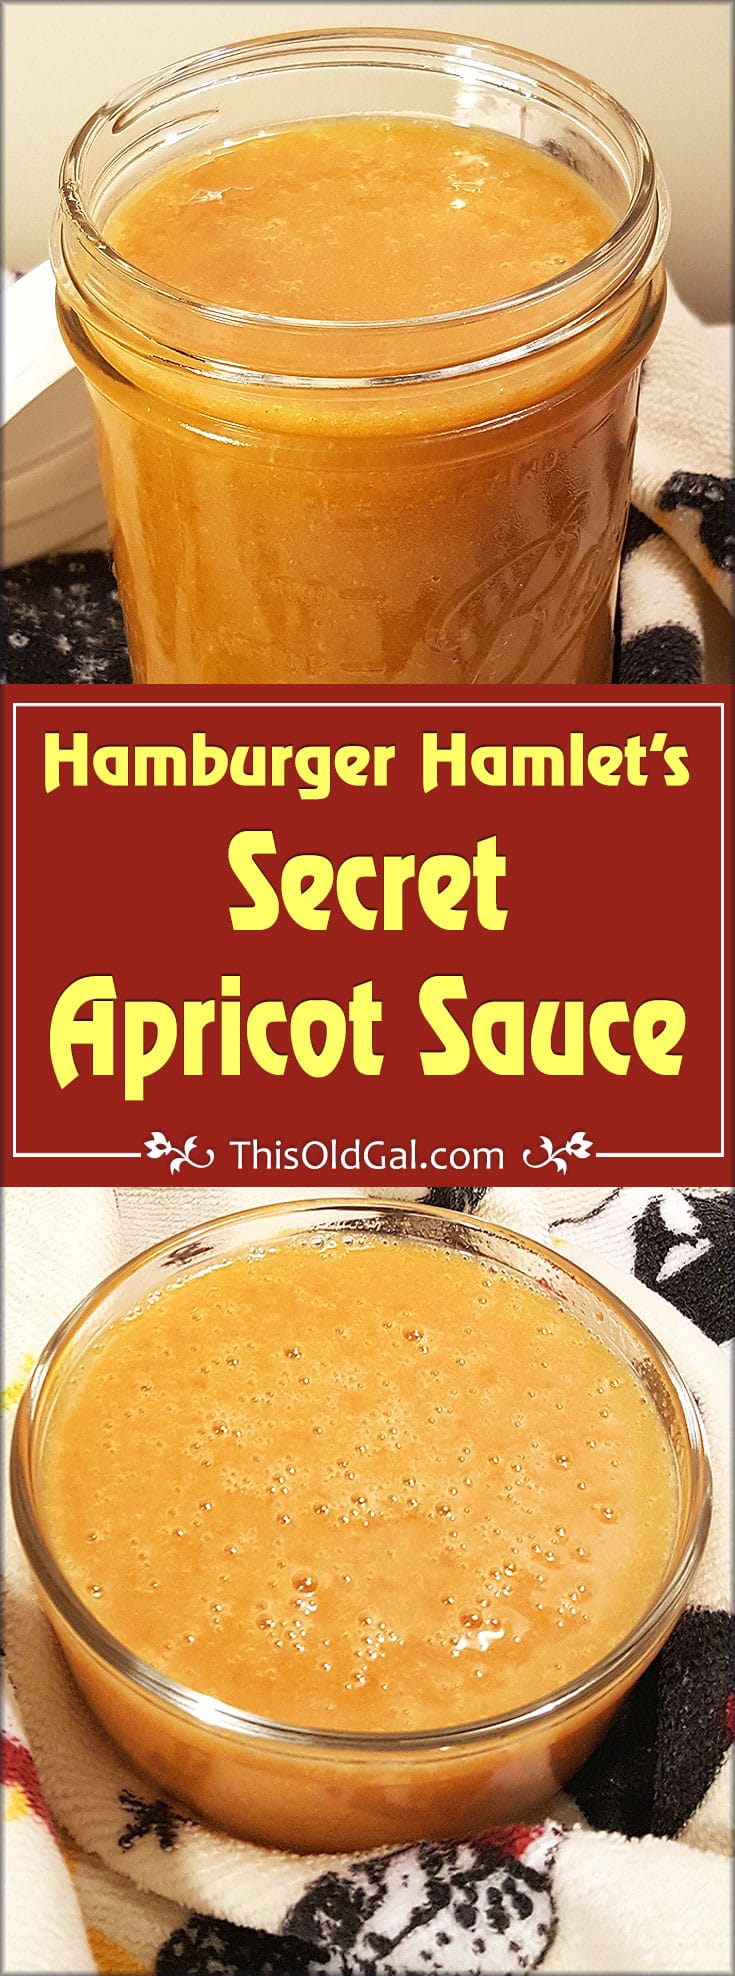 Hamburger Hamlet's Secret Apricot Dipping Sauce